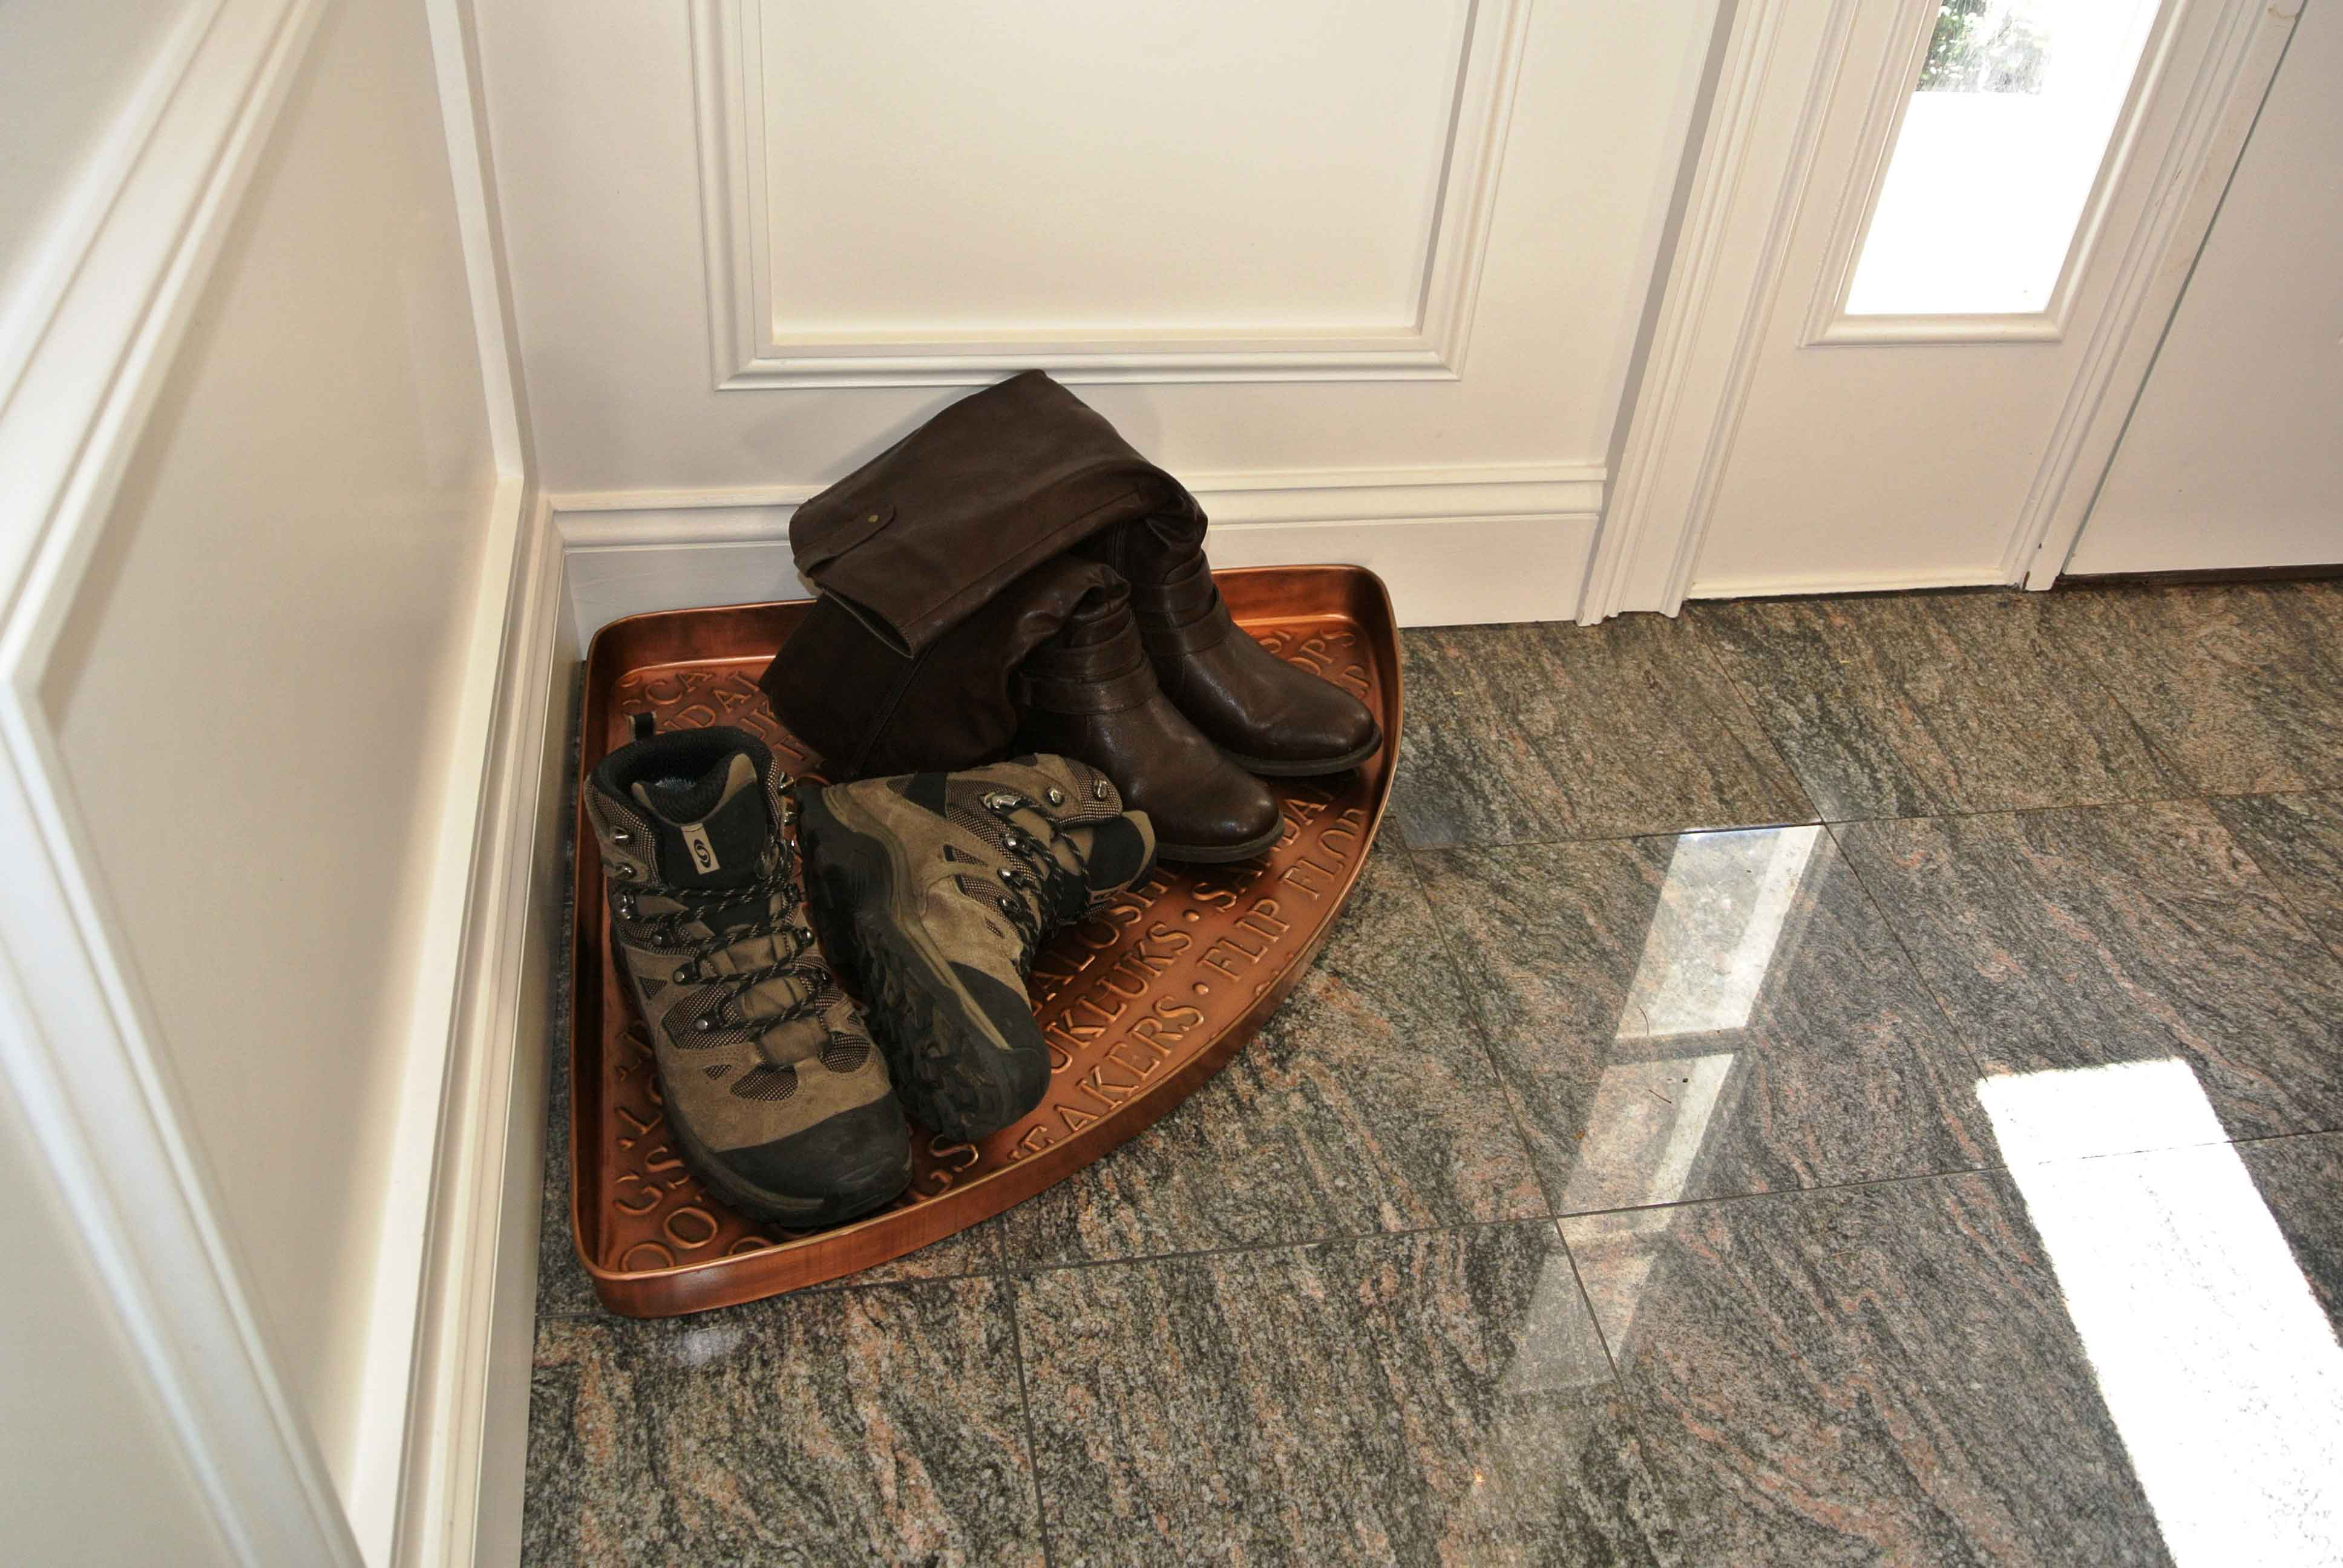 Attractive Embossed International Copper Corner Boot Tray - 22 x 31 x 2 MM52